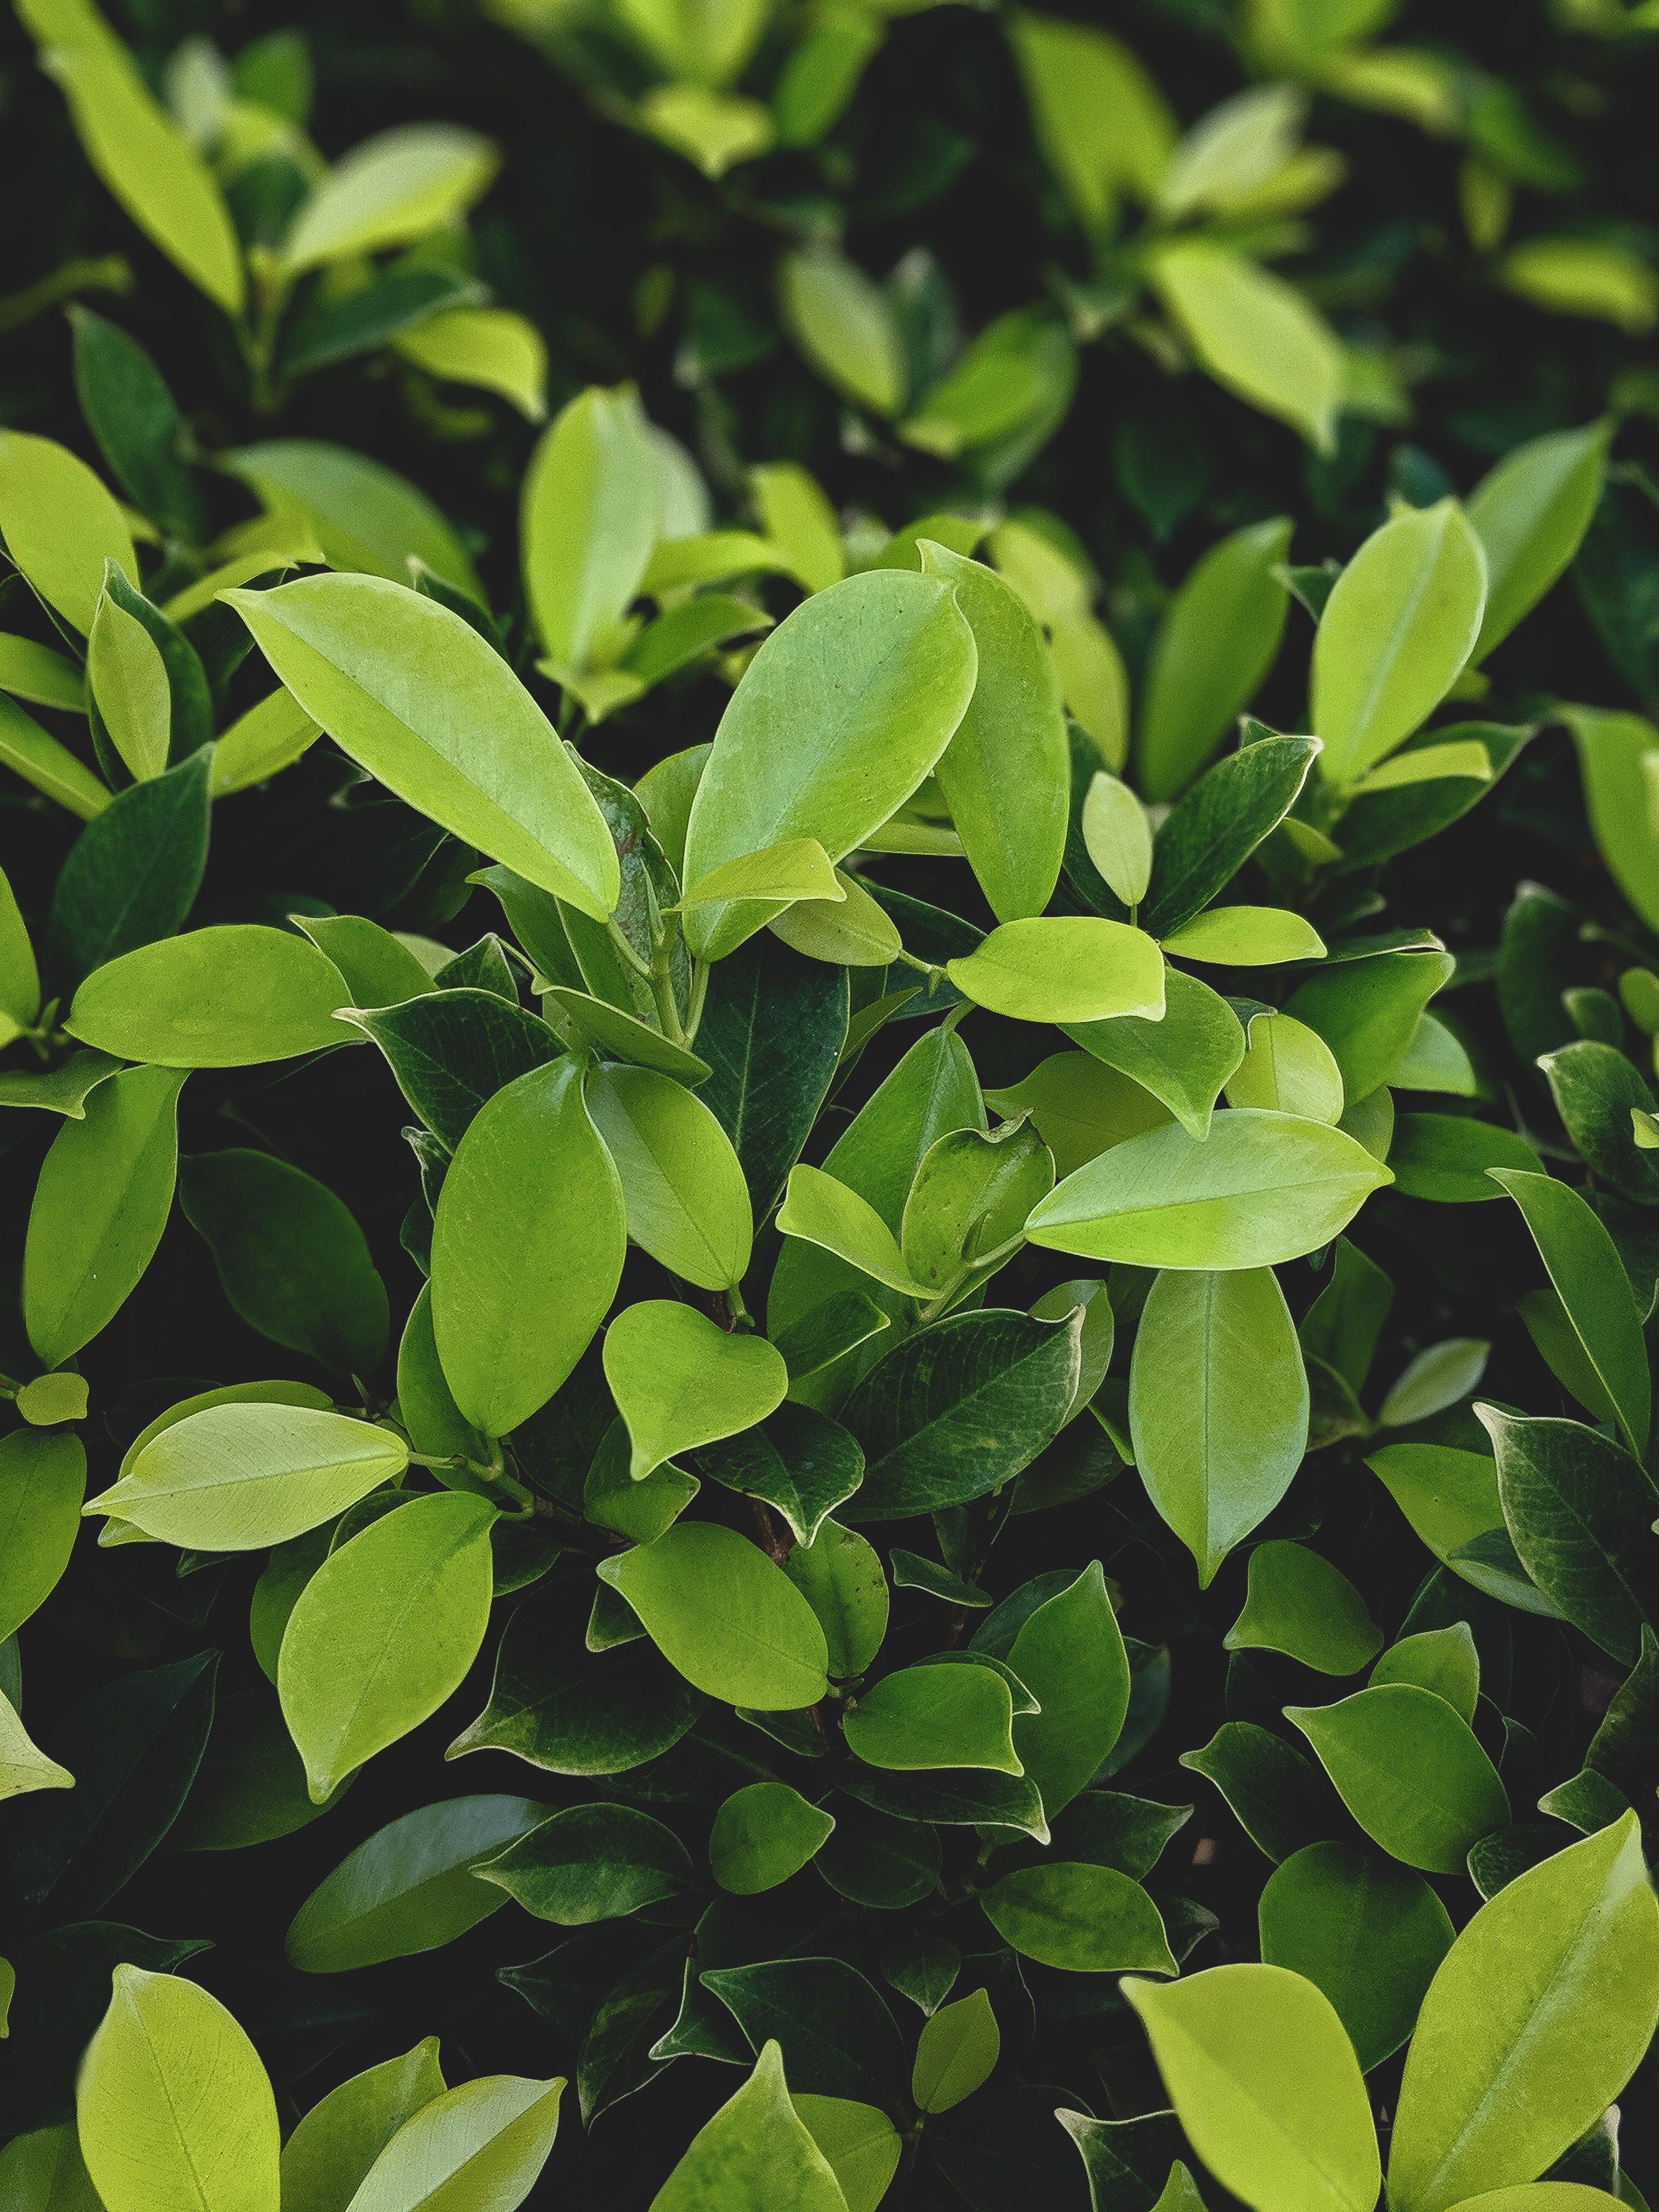 151604 download wallpaper Nature, Leaves, Plant, Branches screensavers and pictures for free